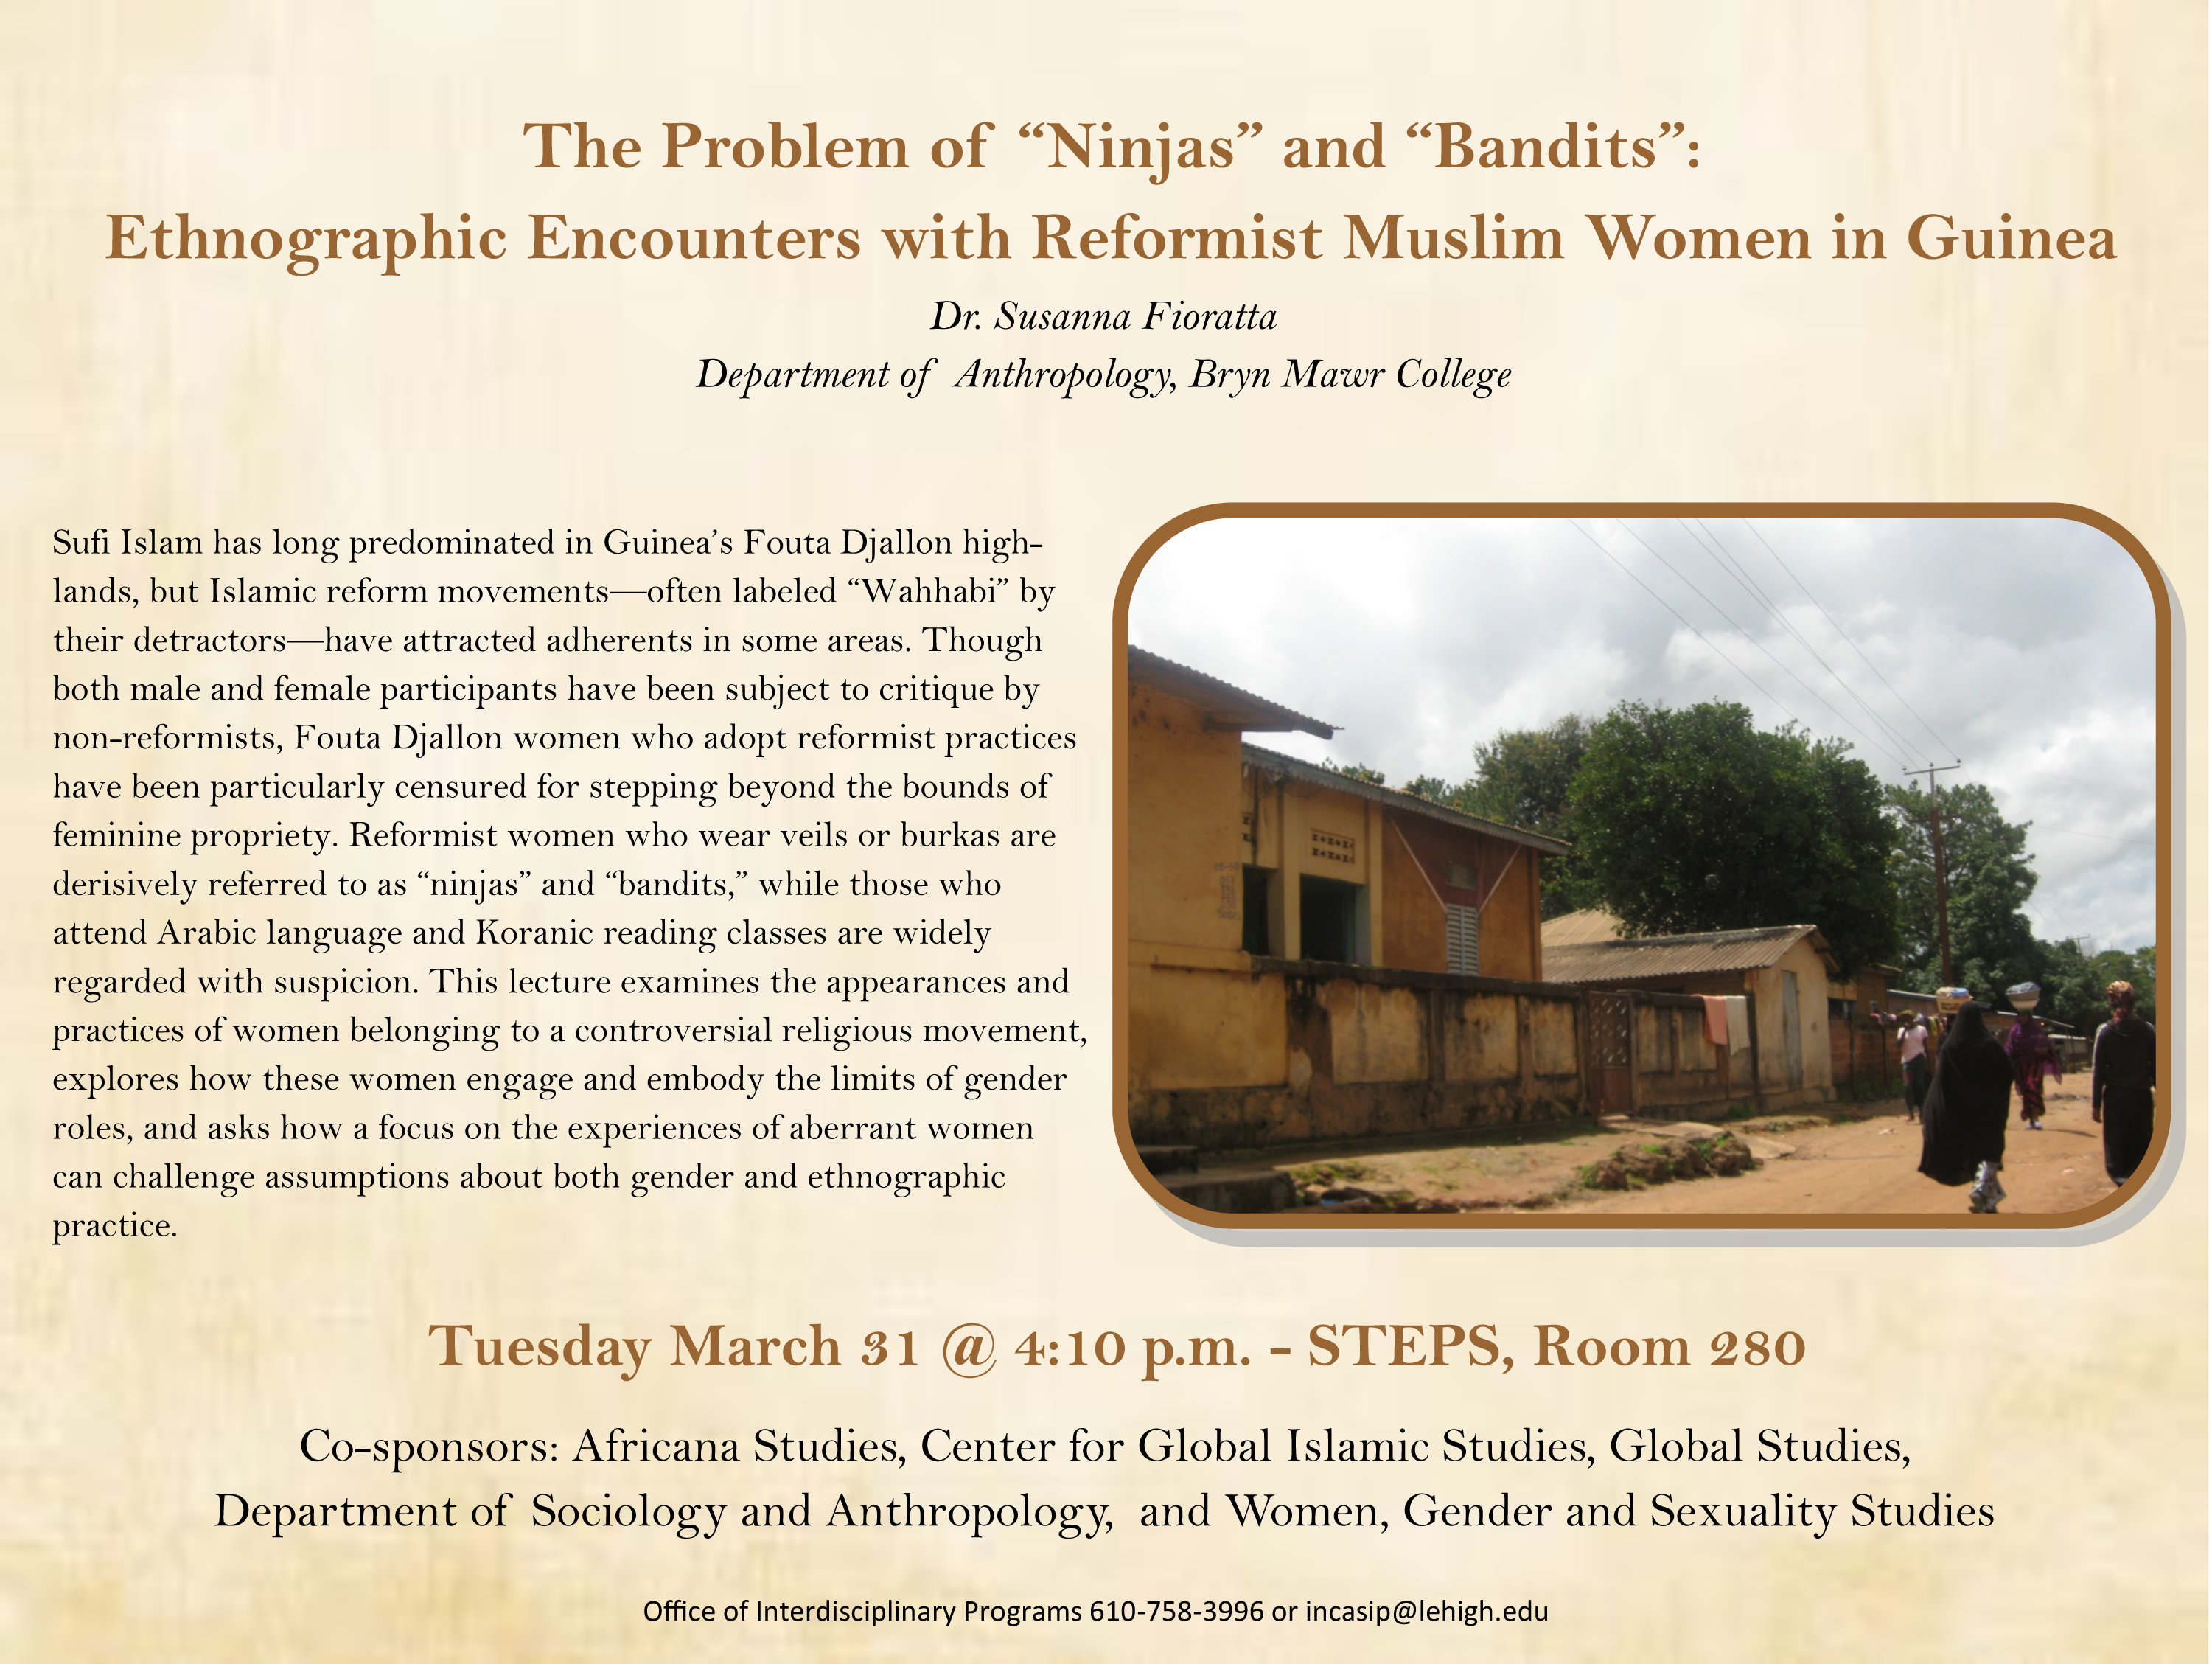 Lehigh University - Global Center for Islamic Studies - Problem of Ninjas and Bandits - Susanna Fioratta